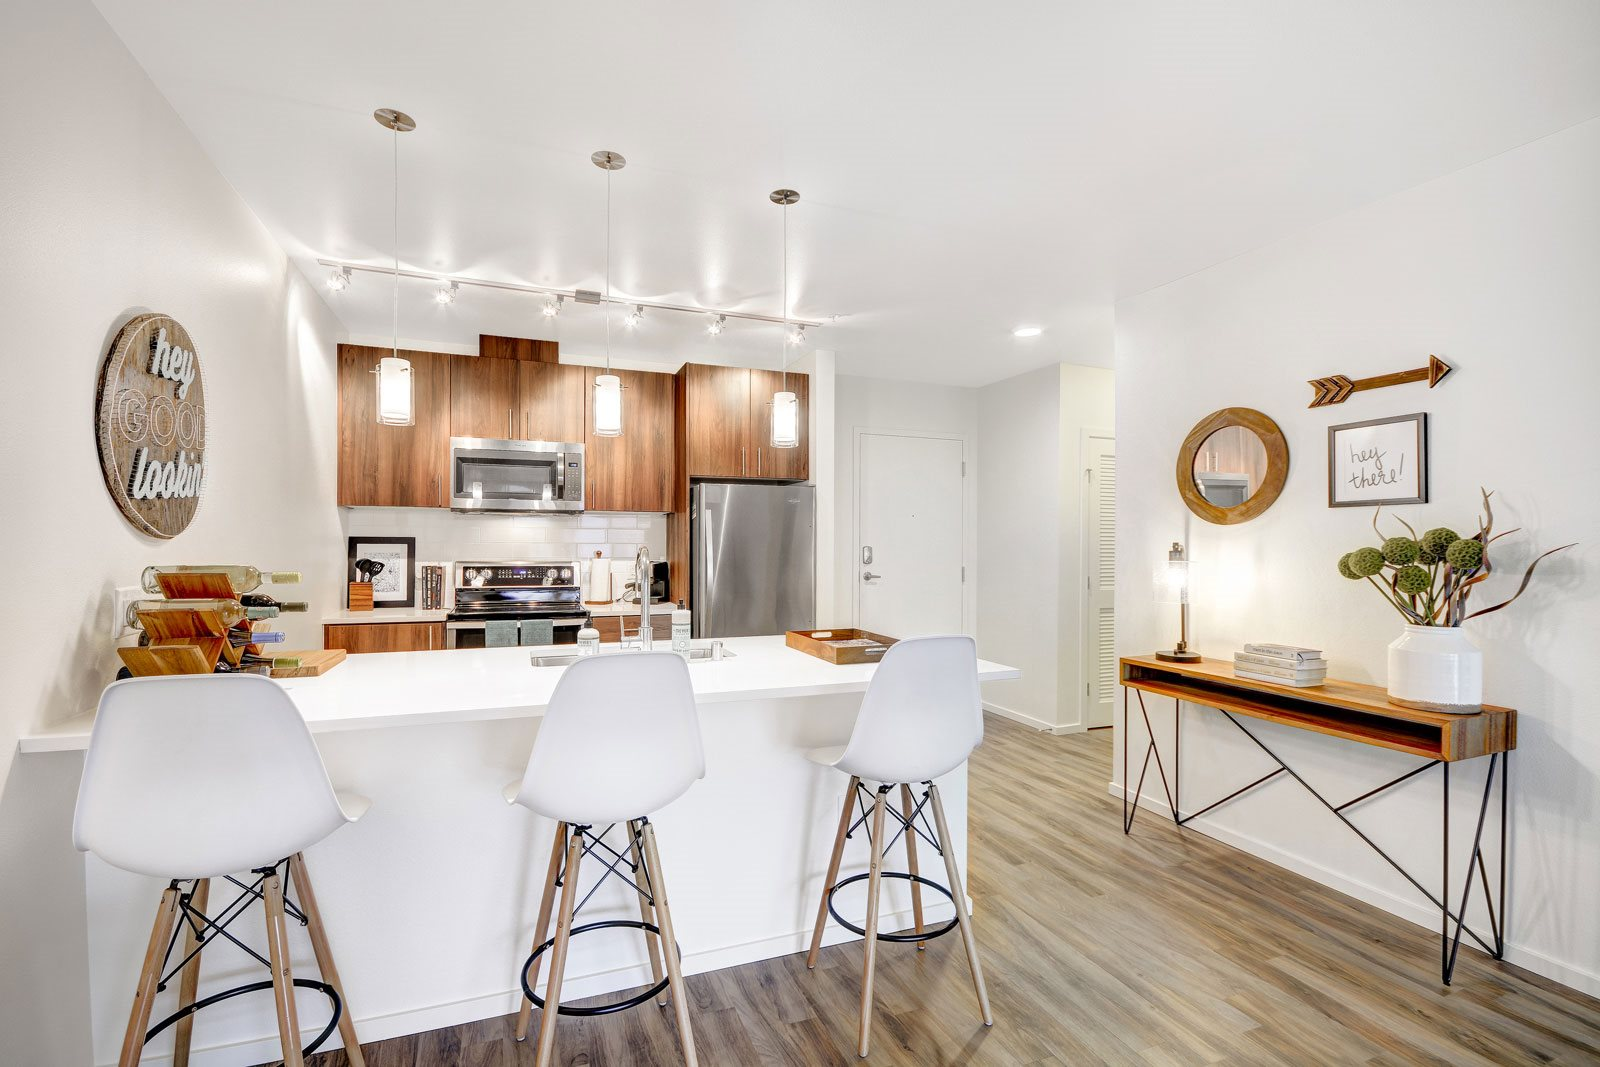 Upscale, Stainless Steel Appliances at The Whittaker, 4755 Fauntleroy Way, Seattle